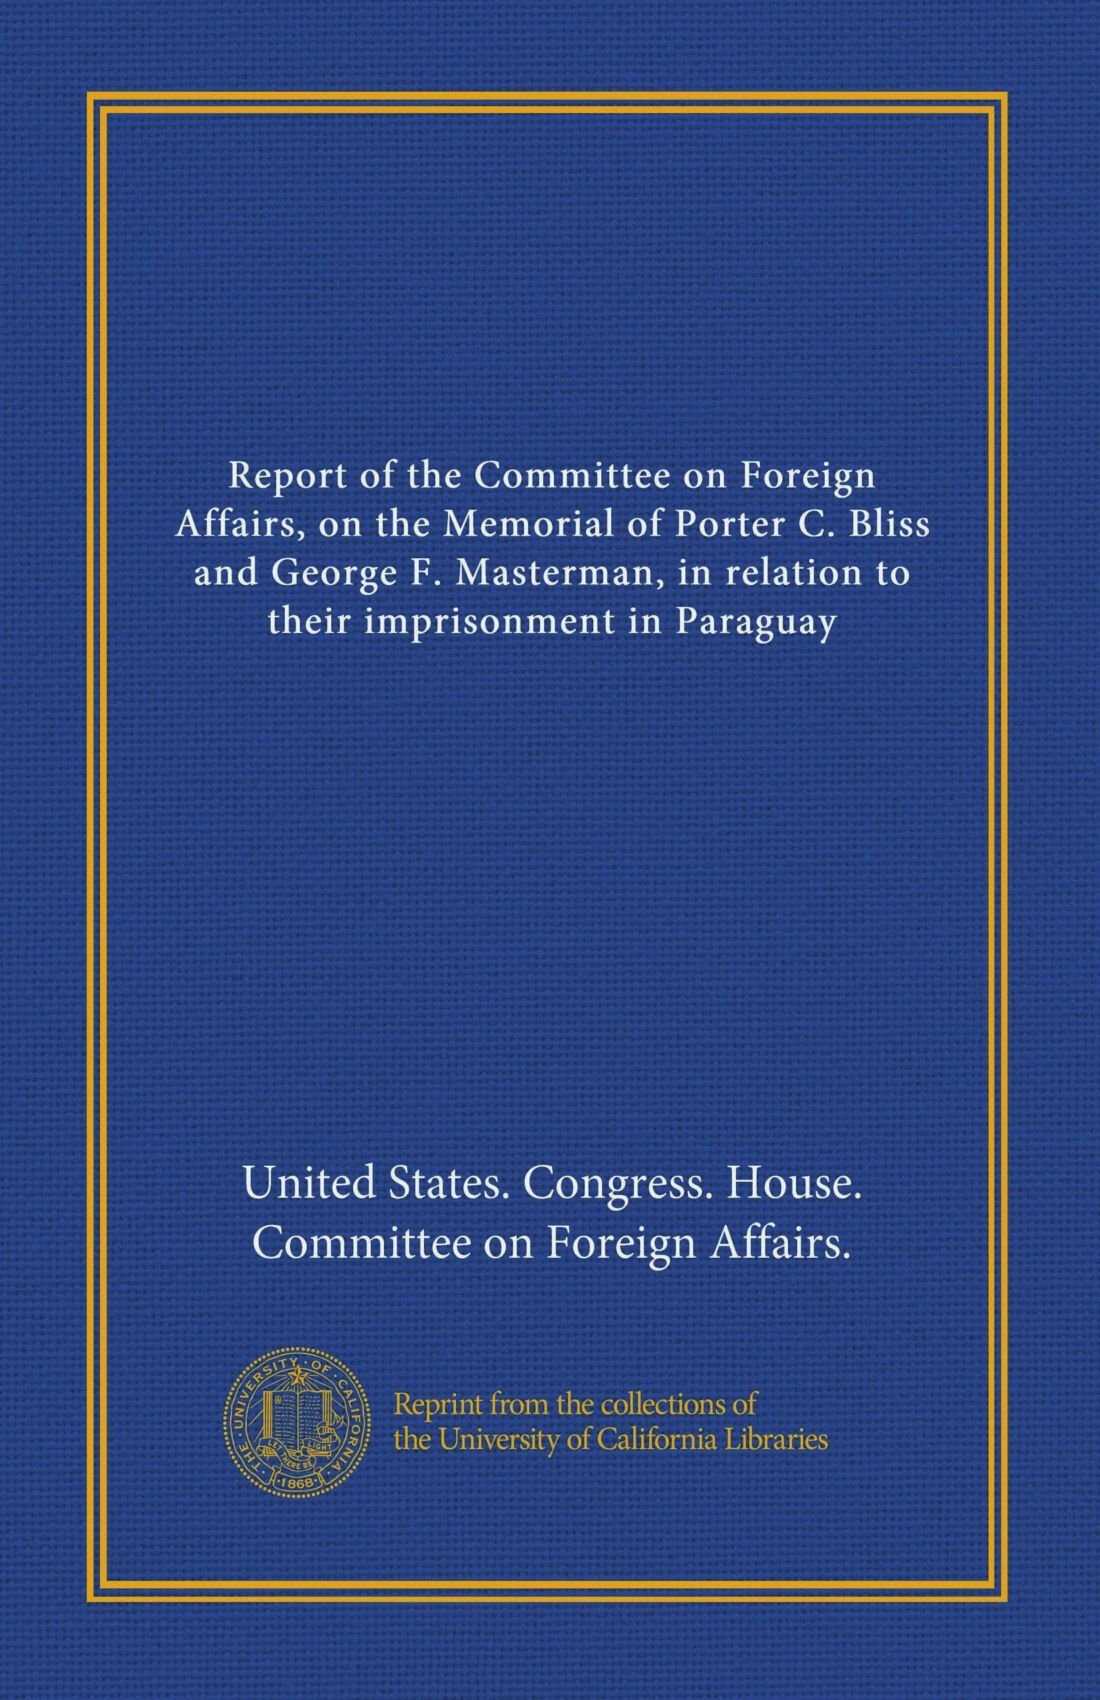 report-of-the-committee-on-foreign-affairs-on-the-memorial-of-porter-c-bliss-and-george-f-masterman-in-relation-to-their-imprisonment-in-paraguay